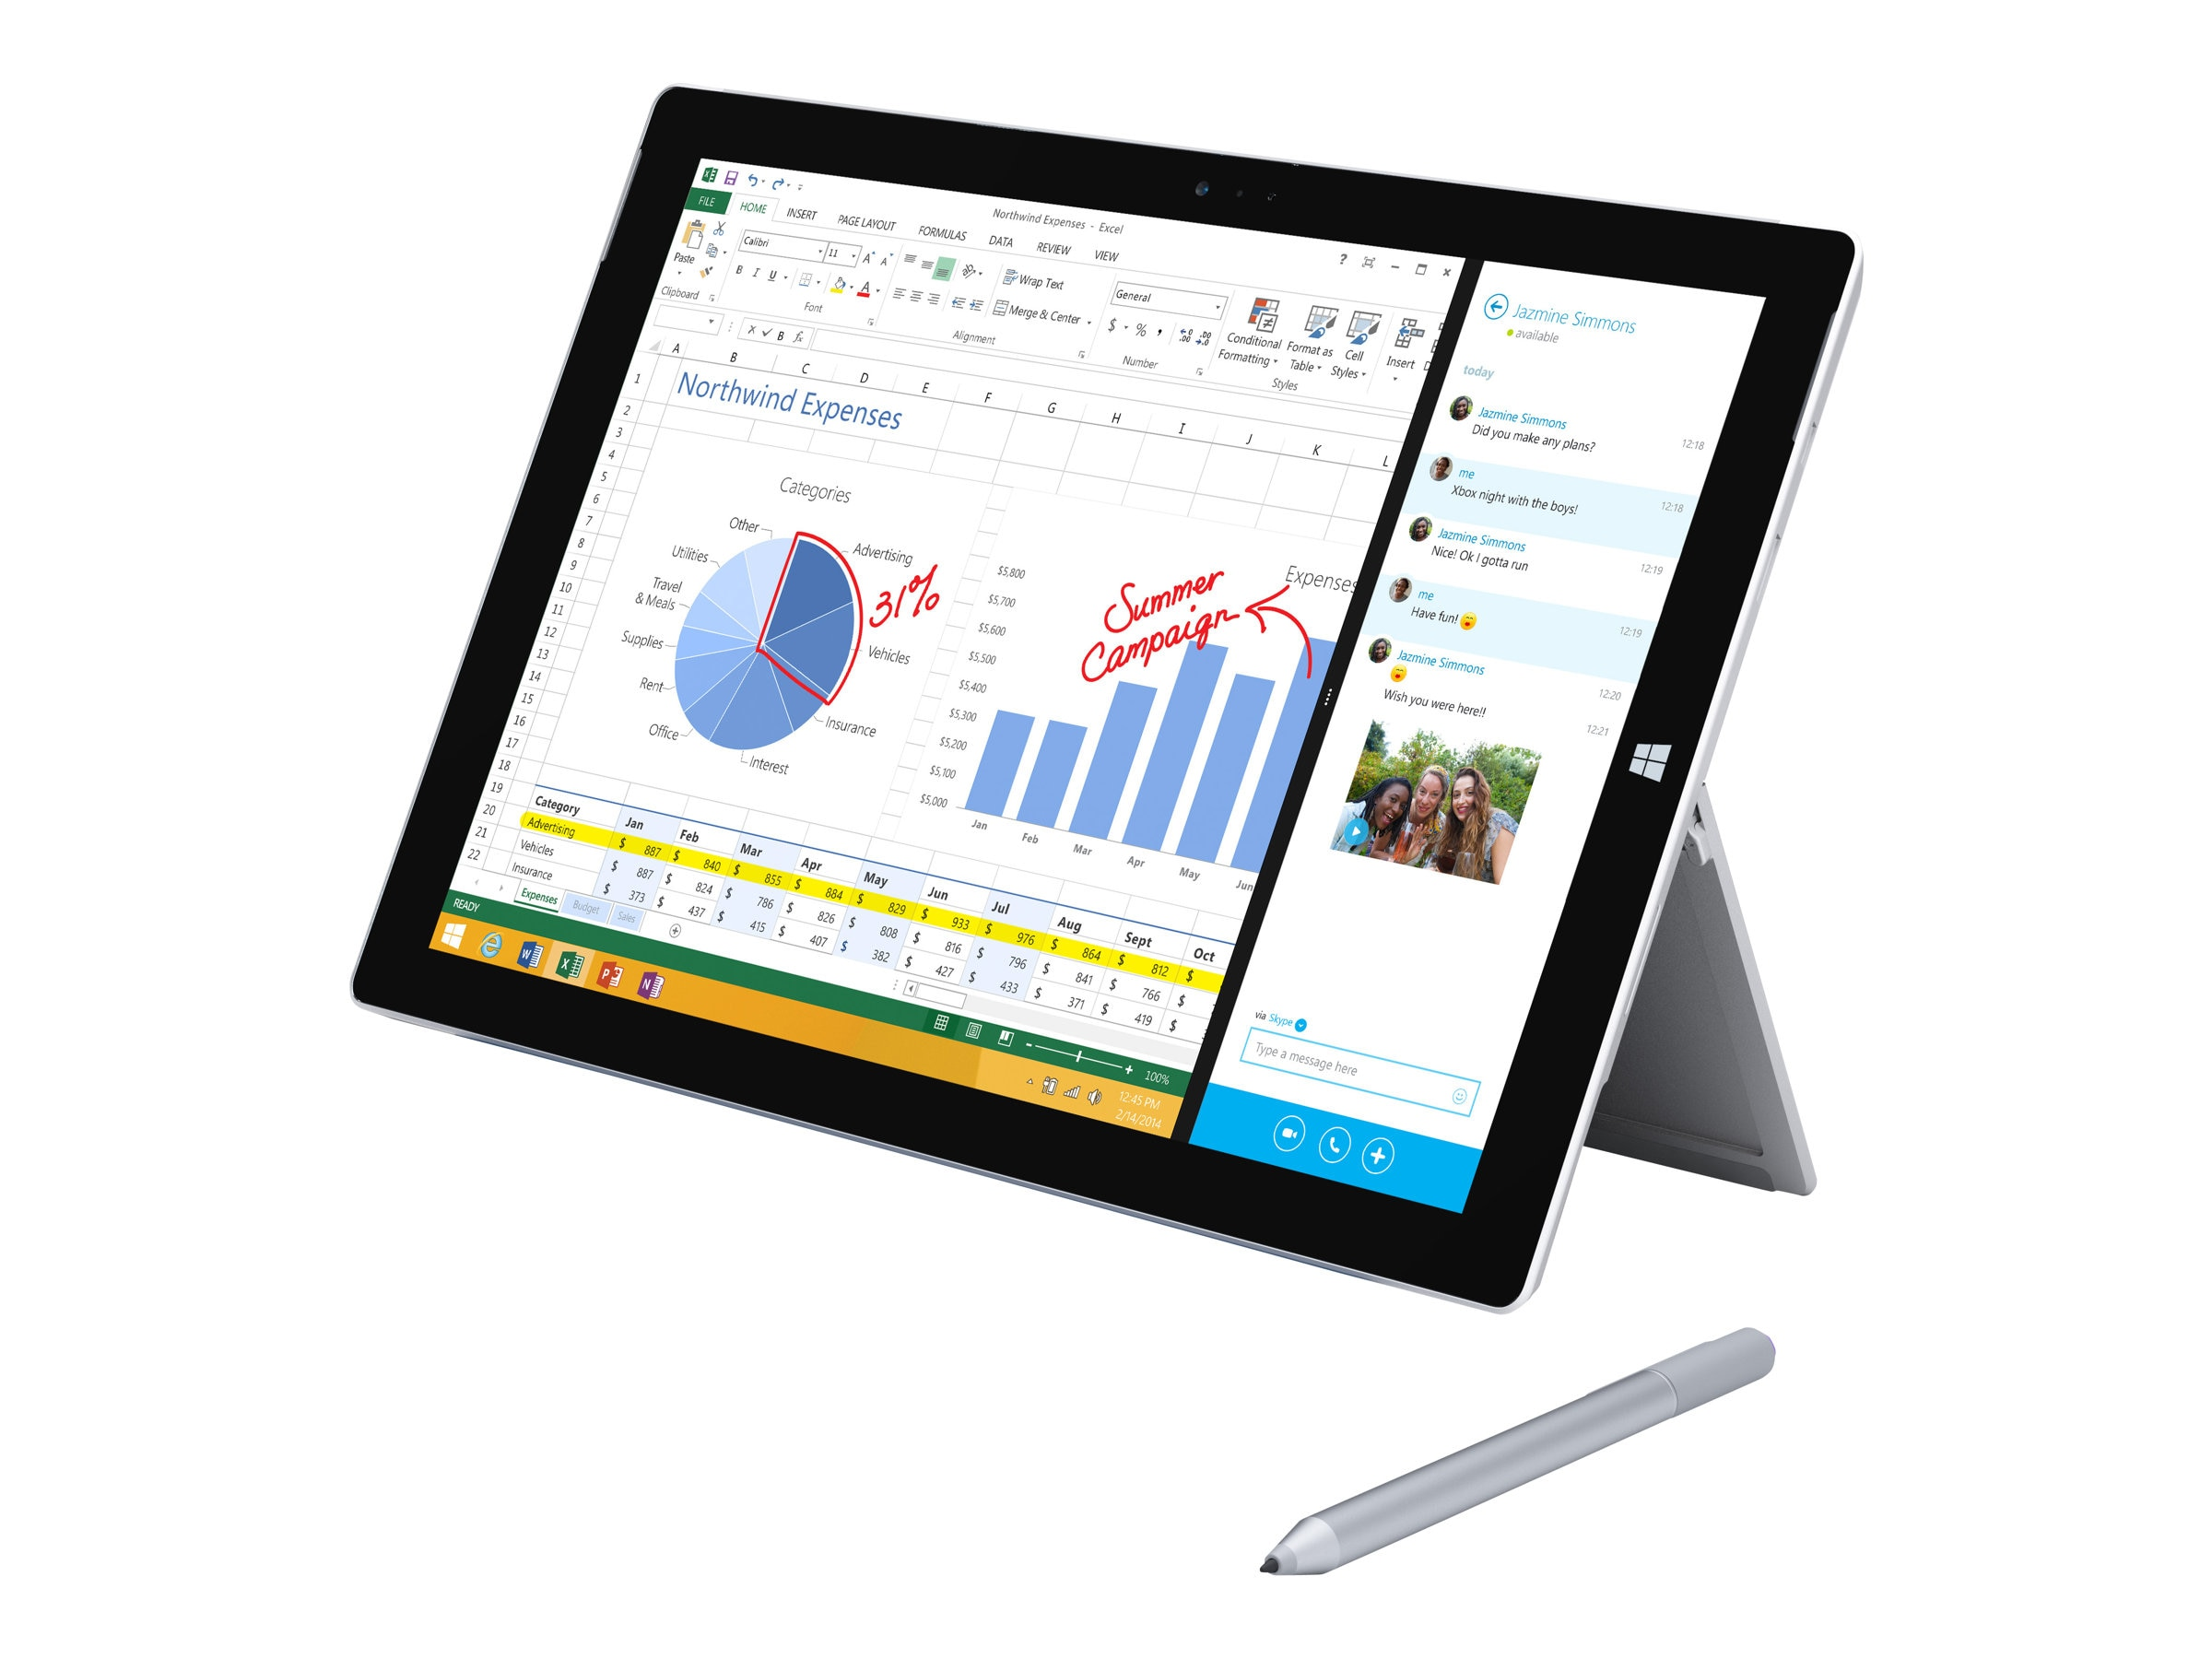 Scratch & Dent Microsoft Surface Pro 3 Tablet Core i5 8GB 256GB acabgn BT 2xWC 12 FHD+ MT W8.1P